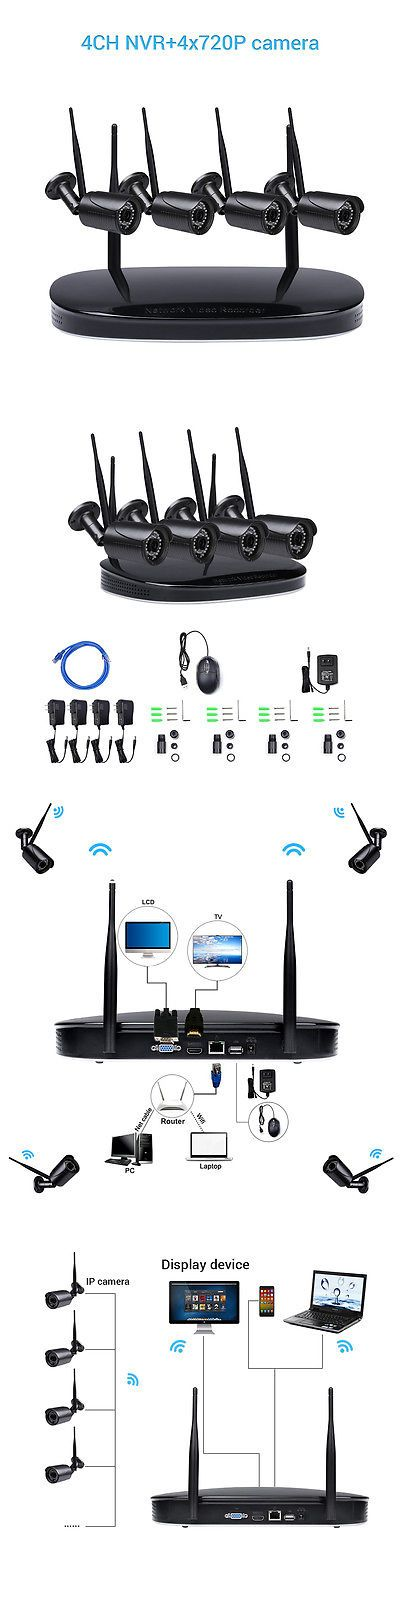 Security Cameras: Hd 720P Wifi Wireless Ip Camera System 4Ch Nvr Outdoor Security Home Video -> BUY IT NOW ONLY: $115.99 on eBay!